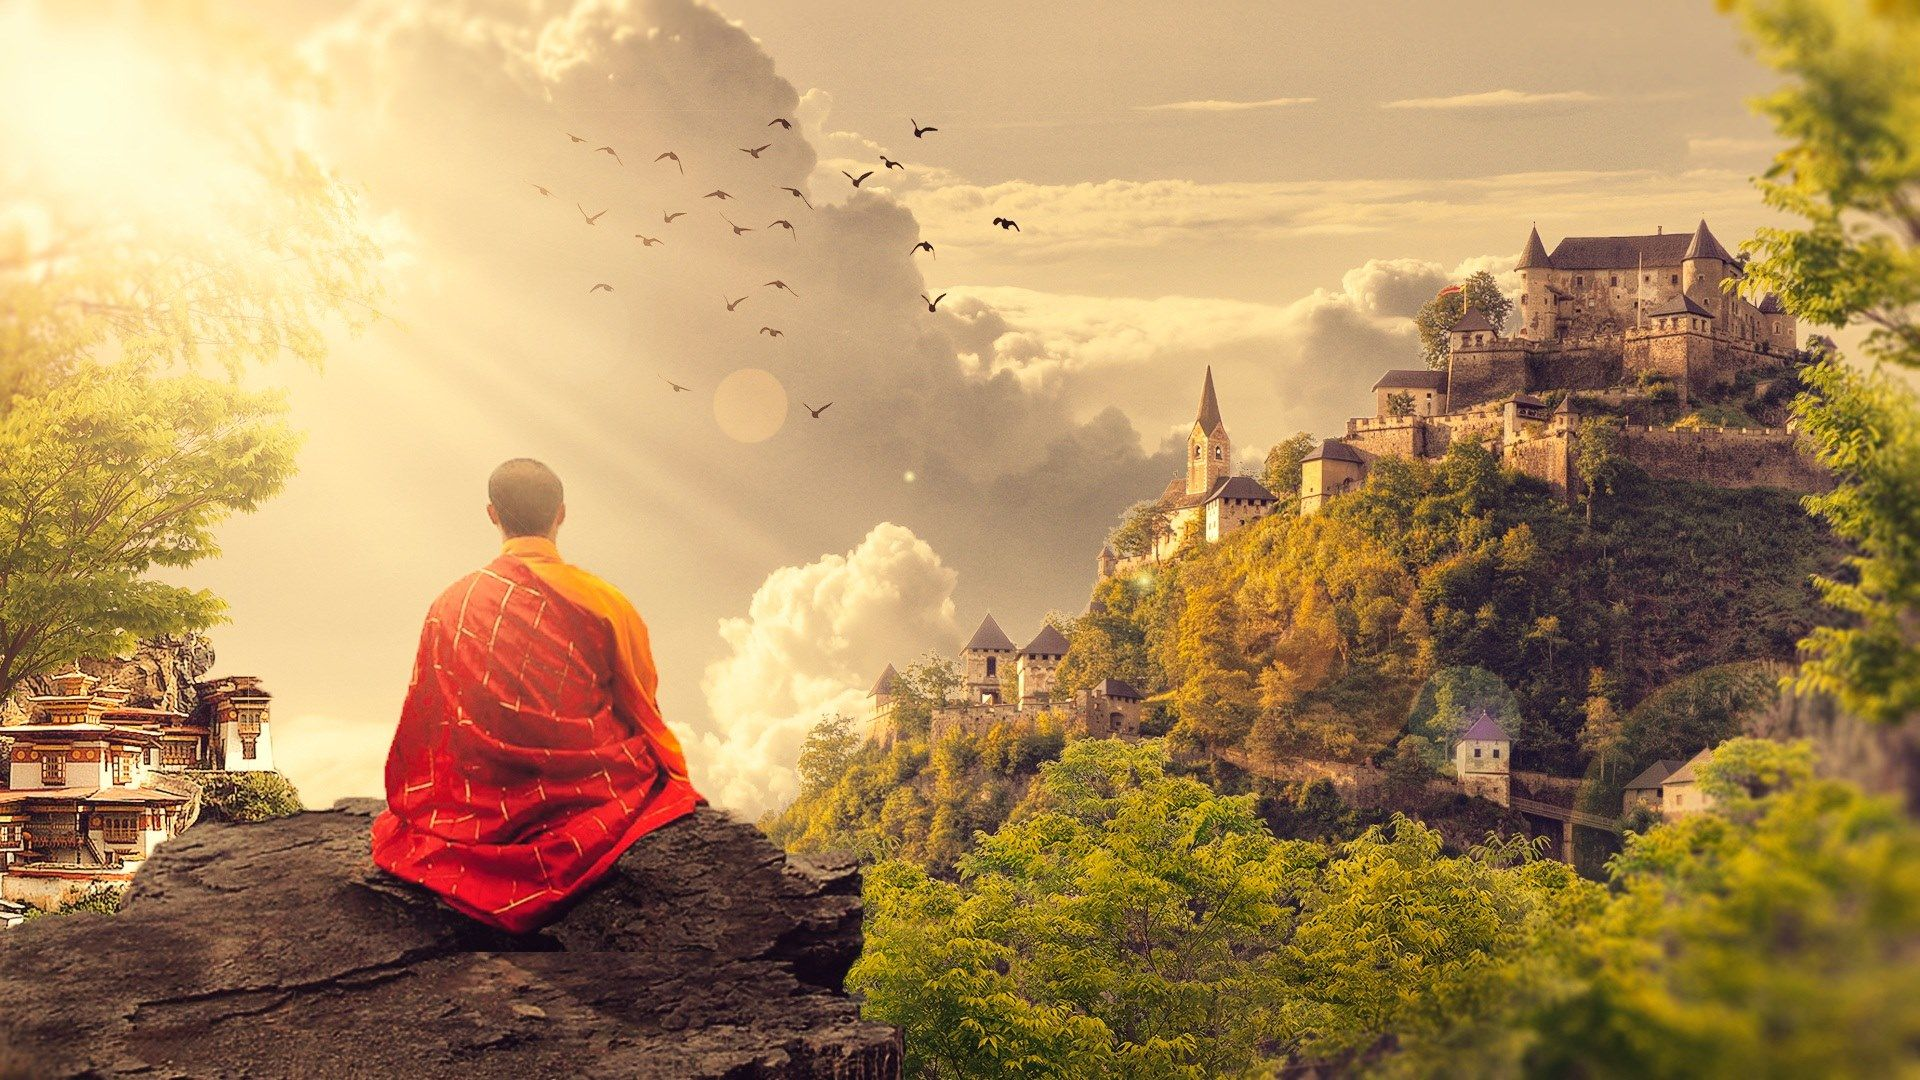 Buddhism Wallpapers - Top Free Buddhism Backgrounds